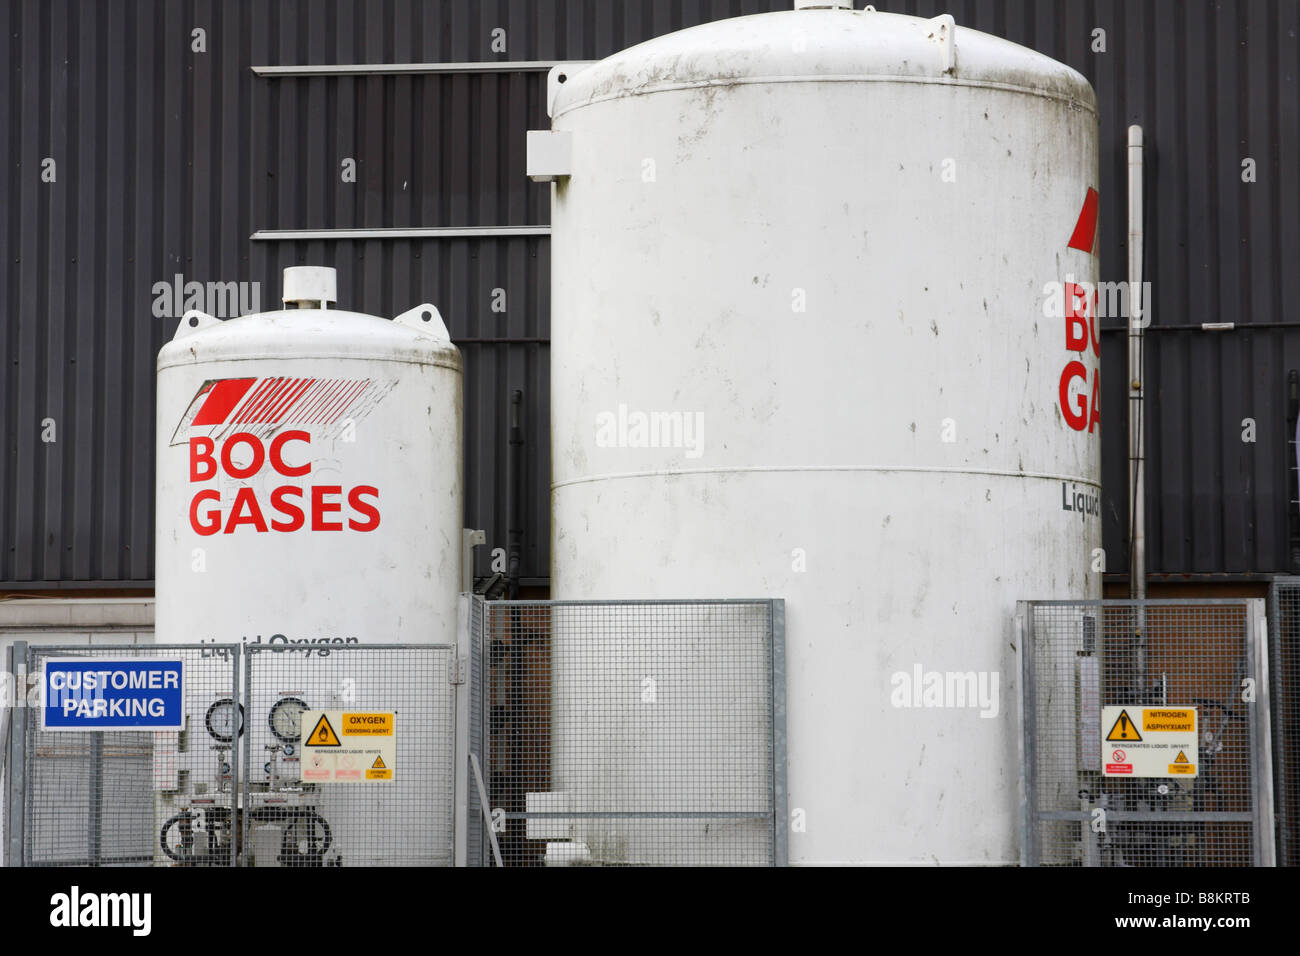 BOC Gas storage tanks on an industrial site in the U.K. - Stock Image